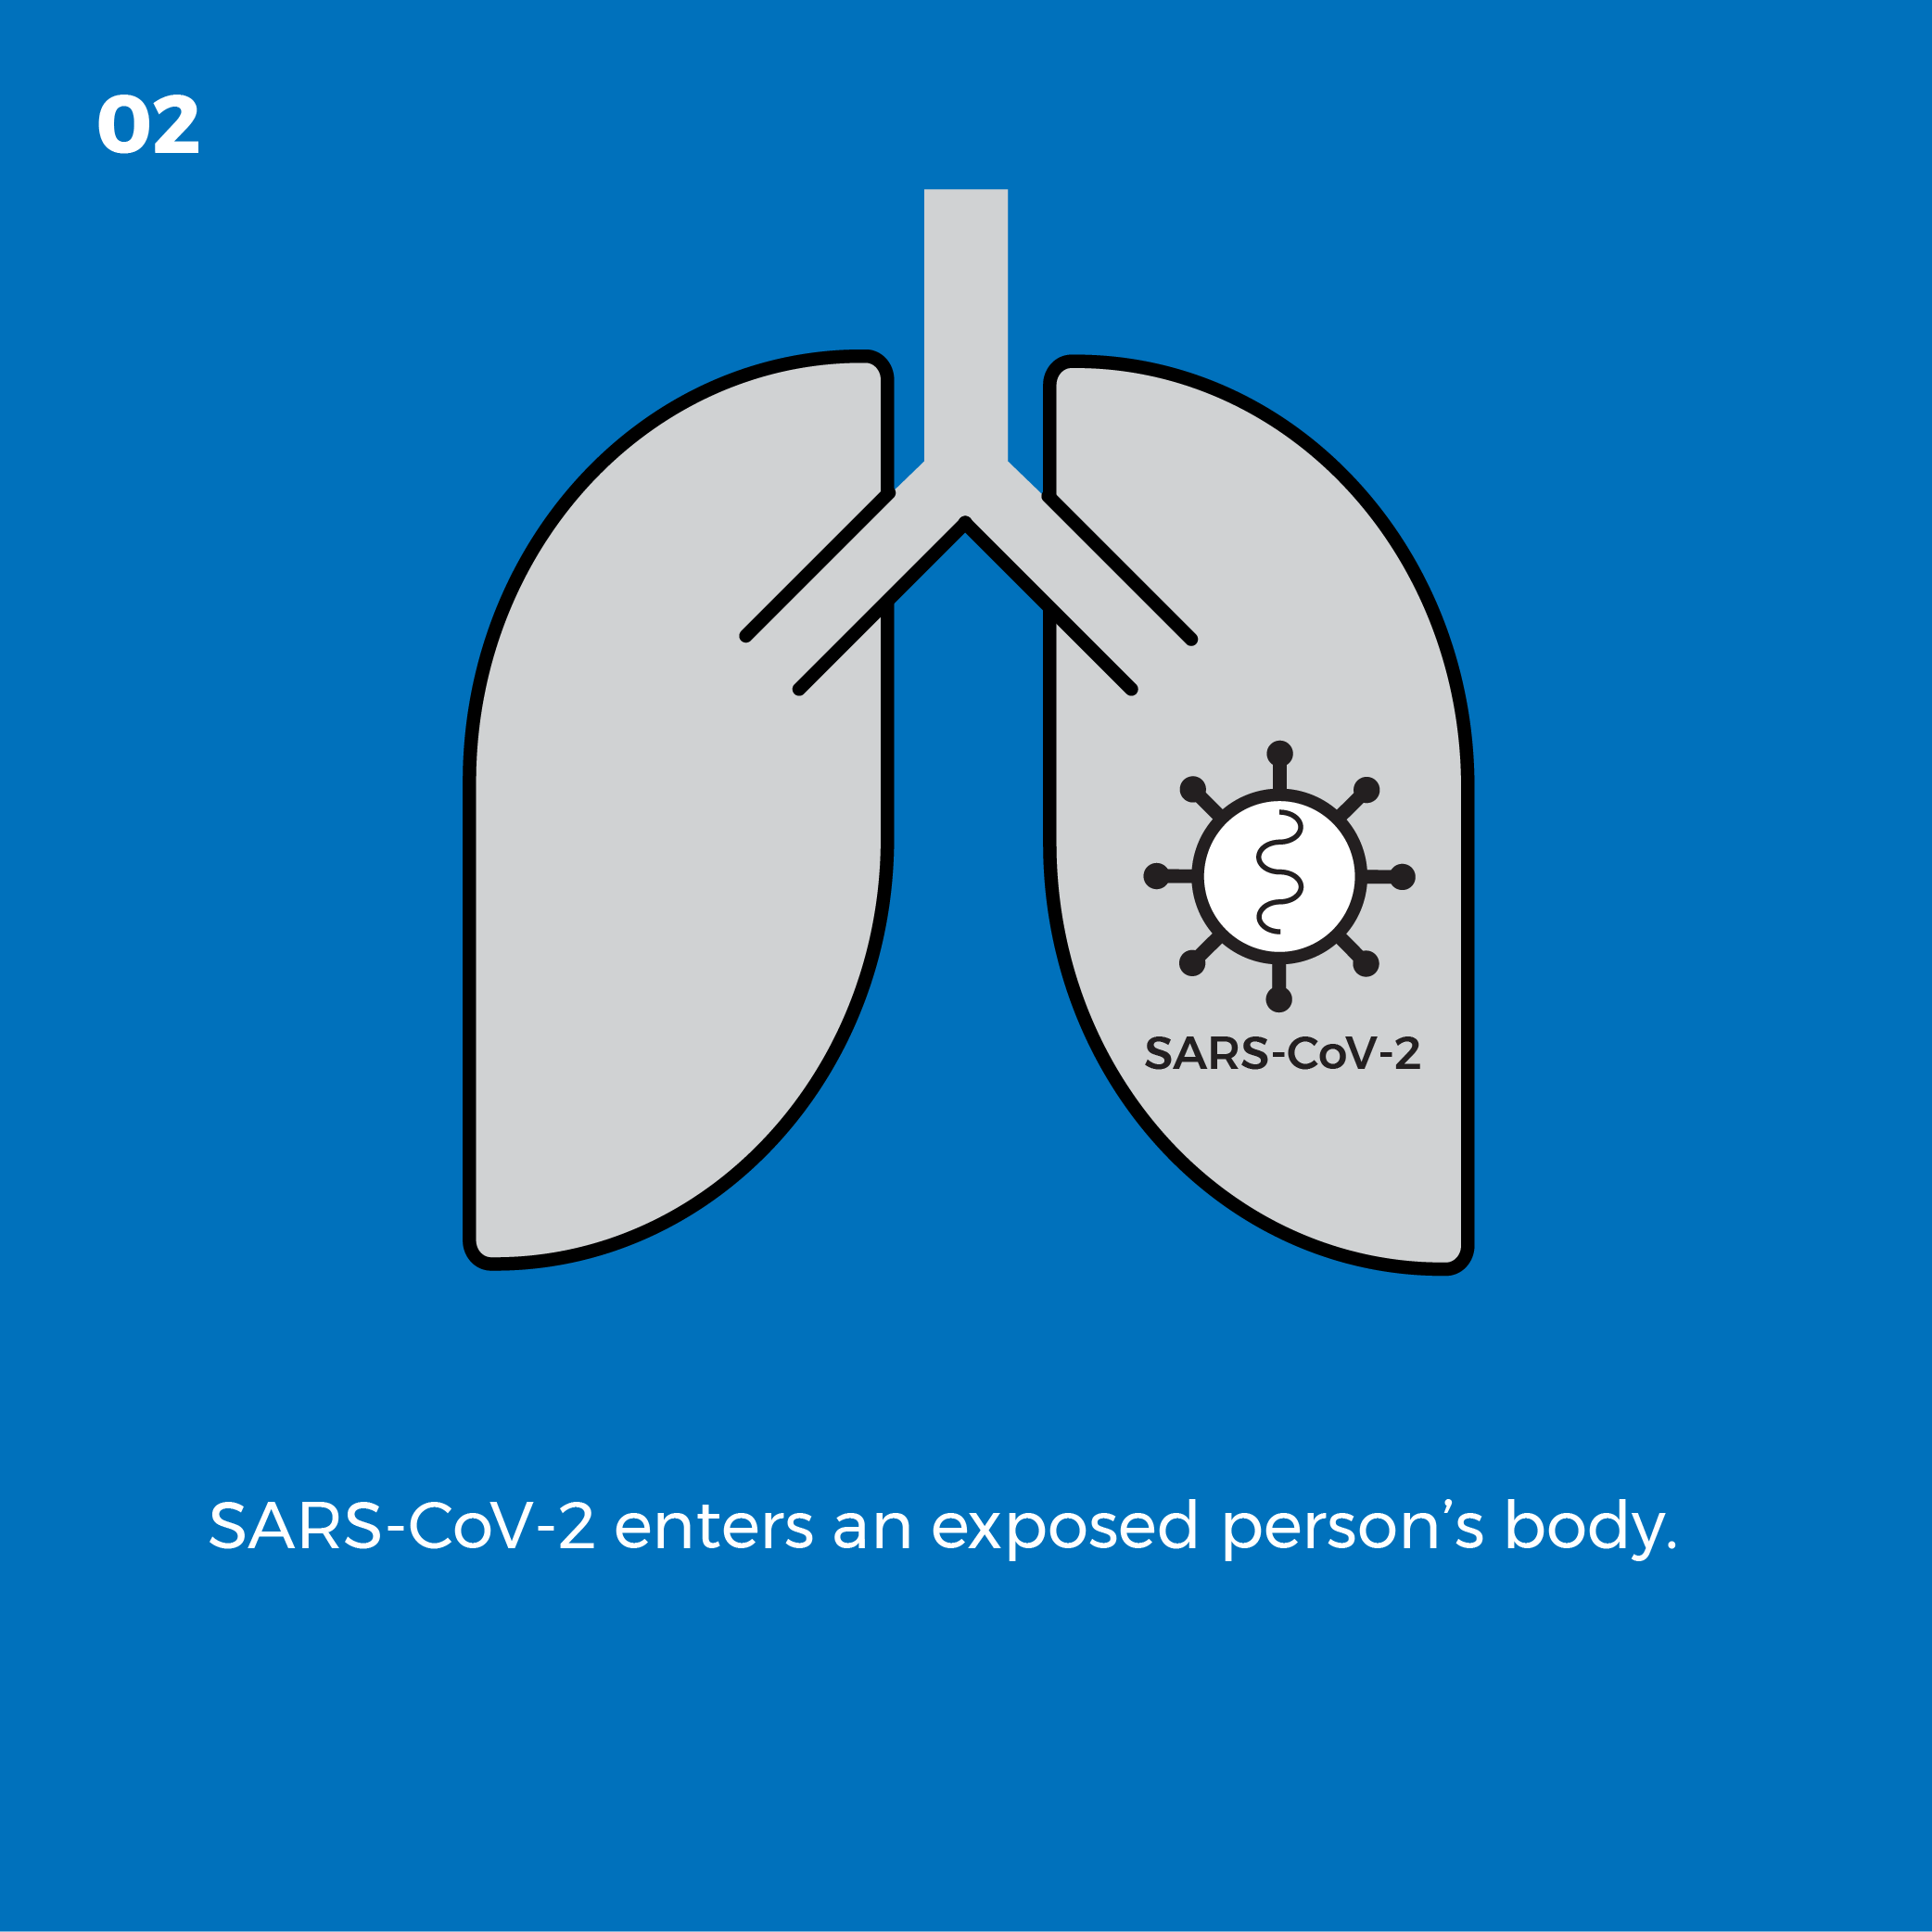 SARS-CoV-2 enters an exposed person's body.